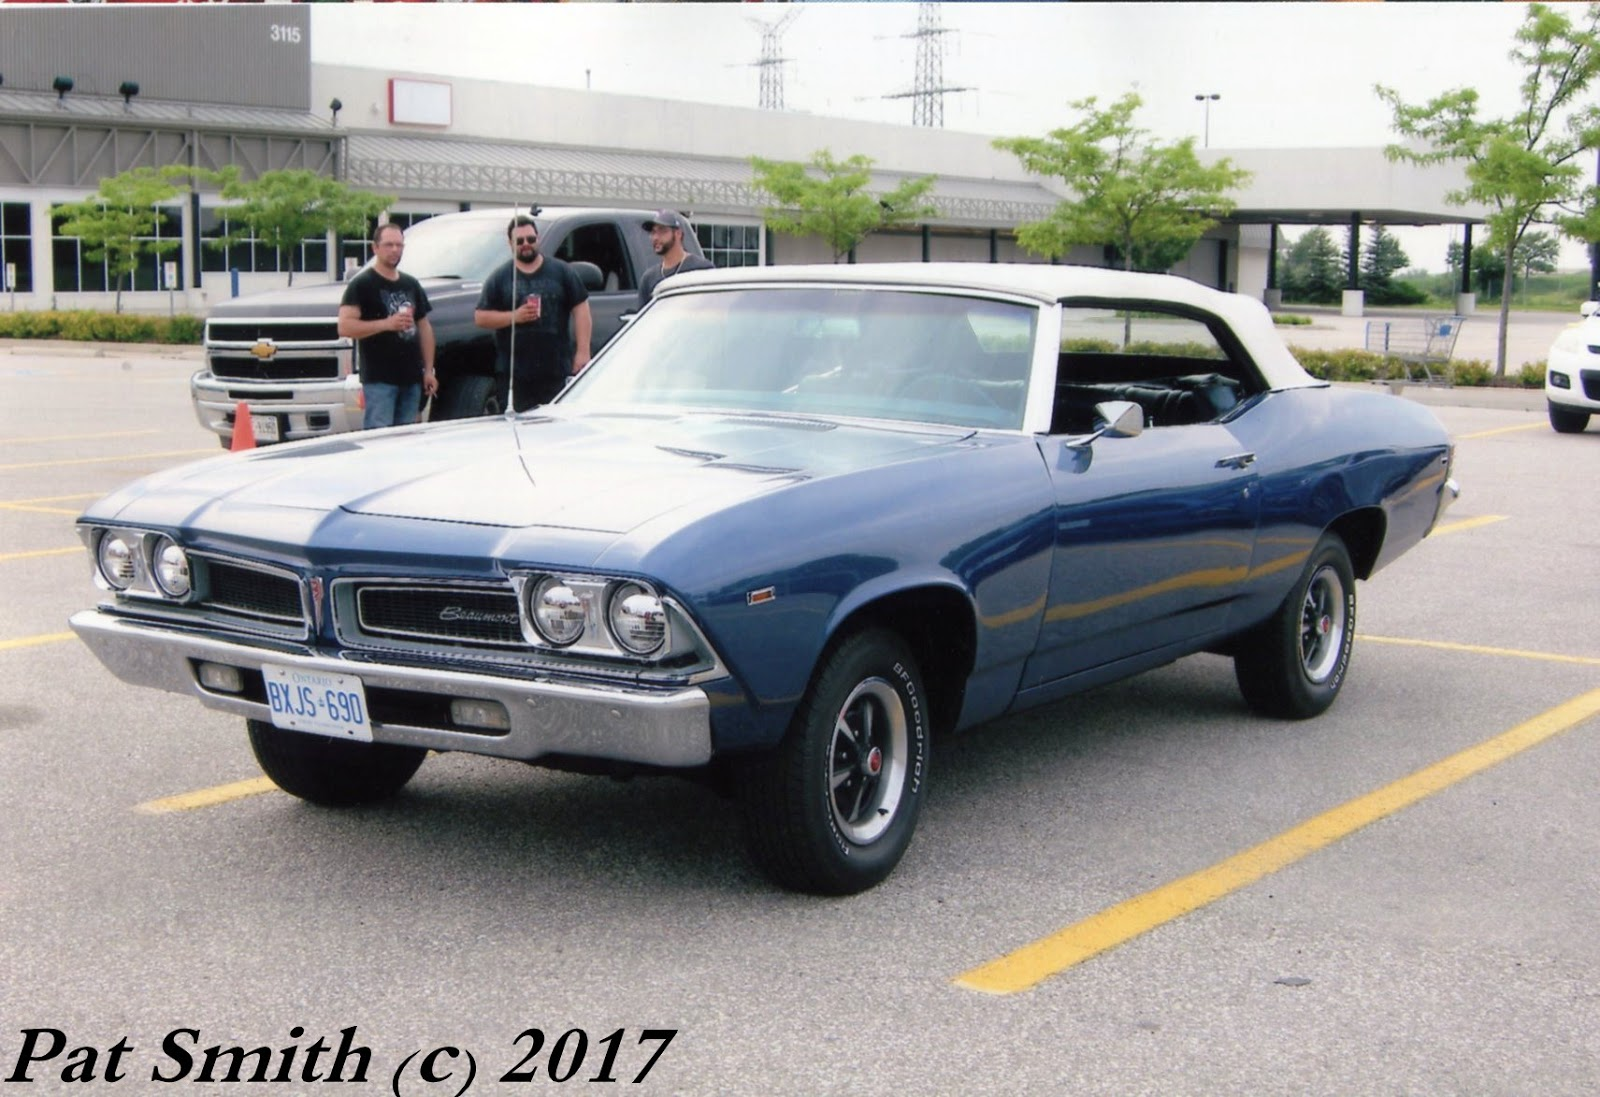 Canadian Classic 1969 Beaumont Convertible Phscollectorcarworld 1999 Mercury Cougar Radio Wiring Diagram This Medium Metallic Blue Example Rides On Rally Ii Wheels And Has A White Top